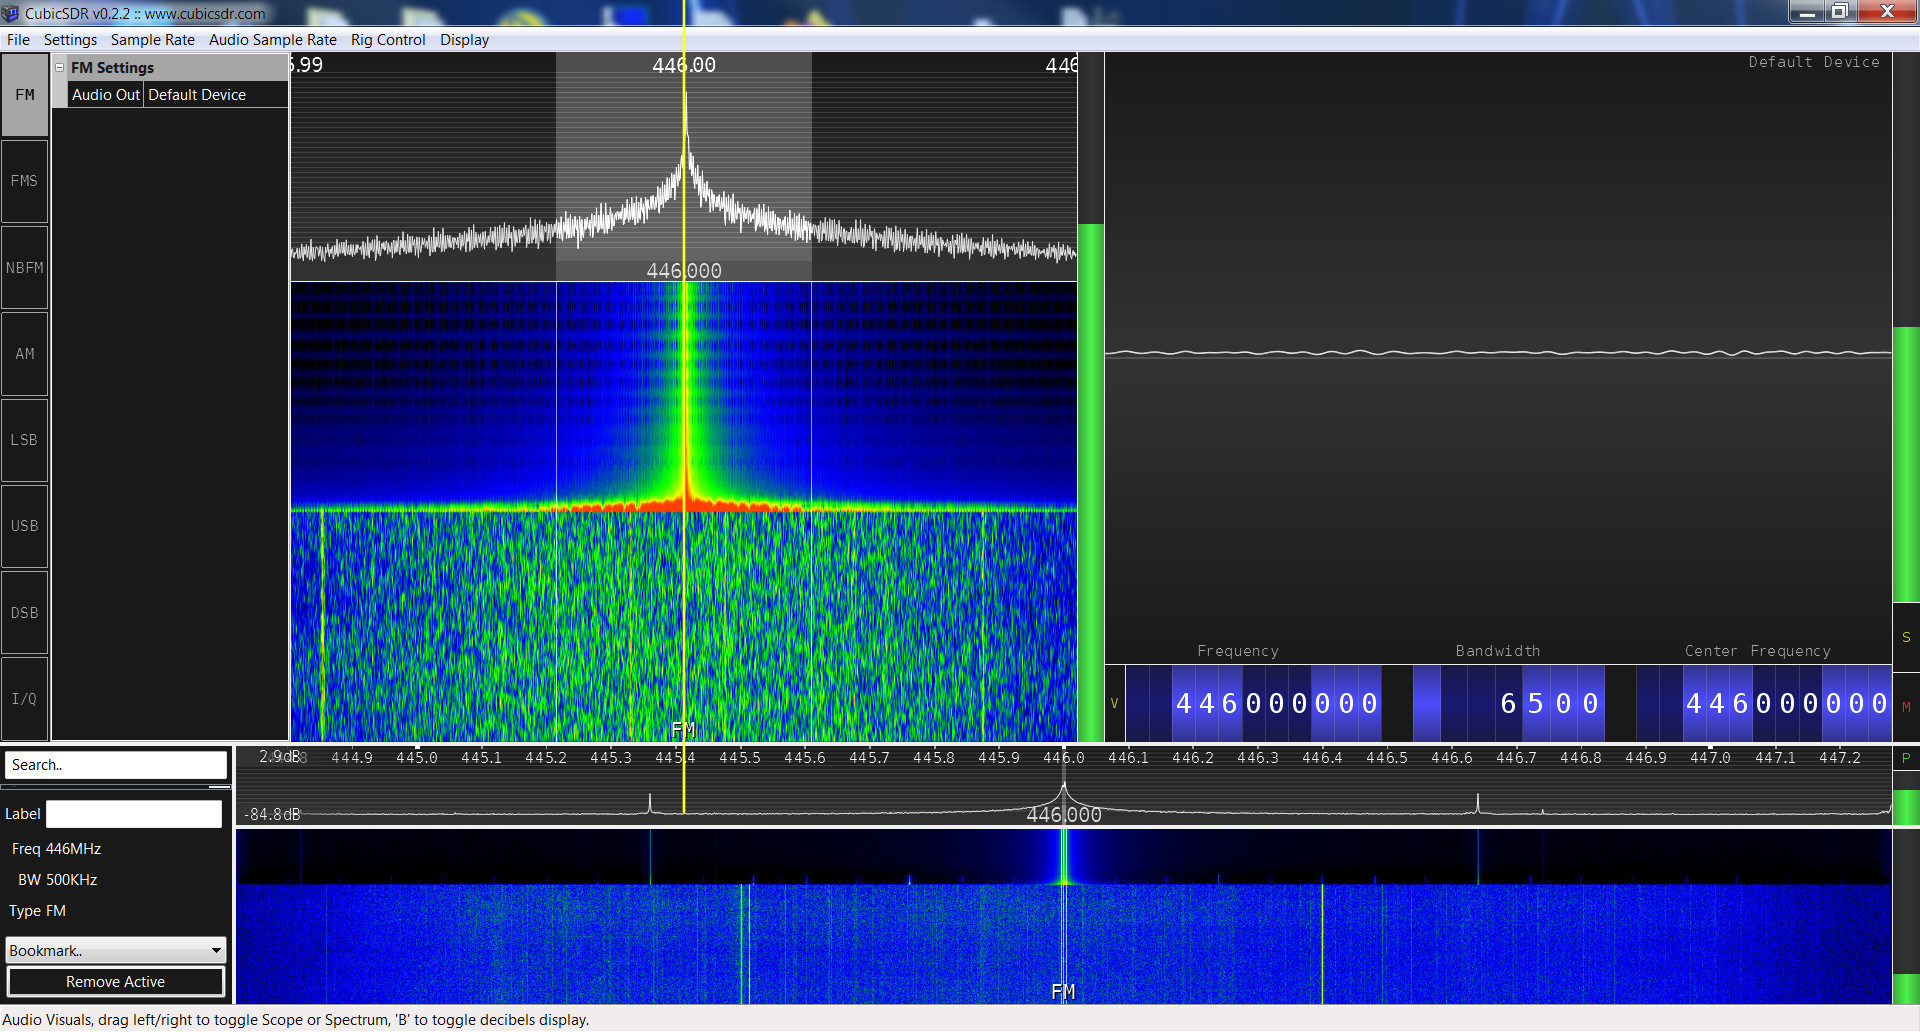 Baofeng UV-5R SRD spectrum analysis